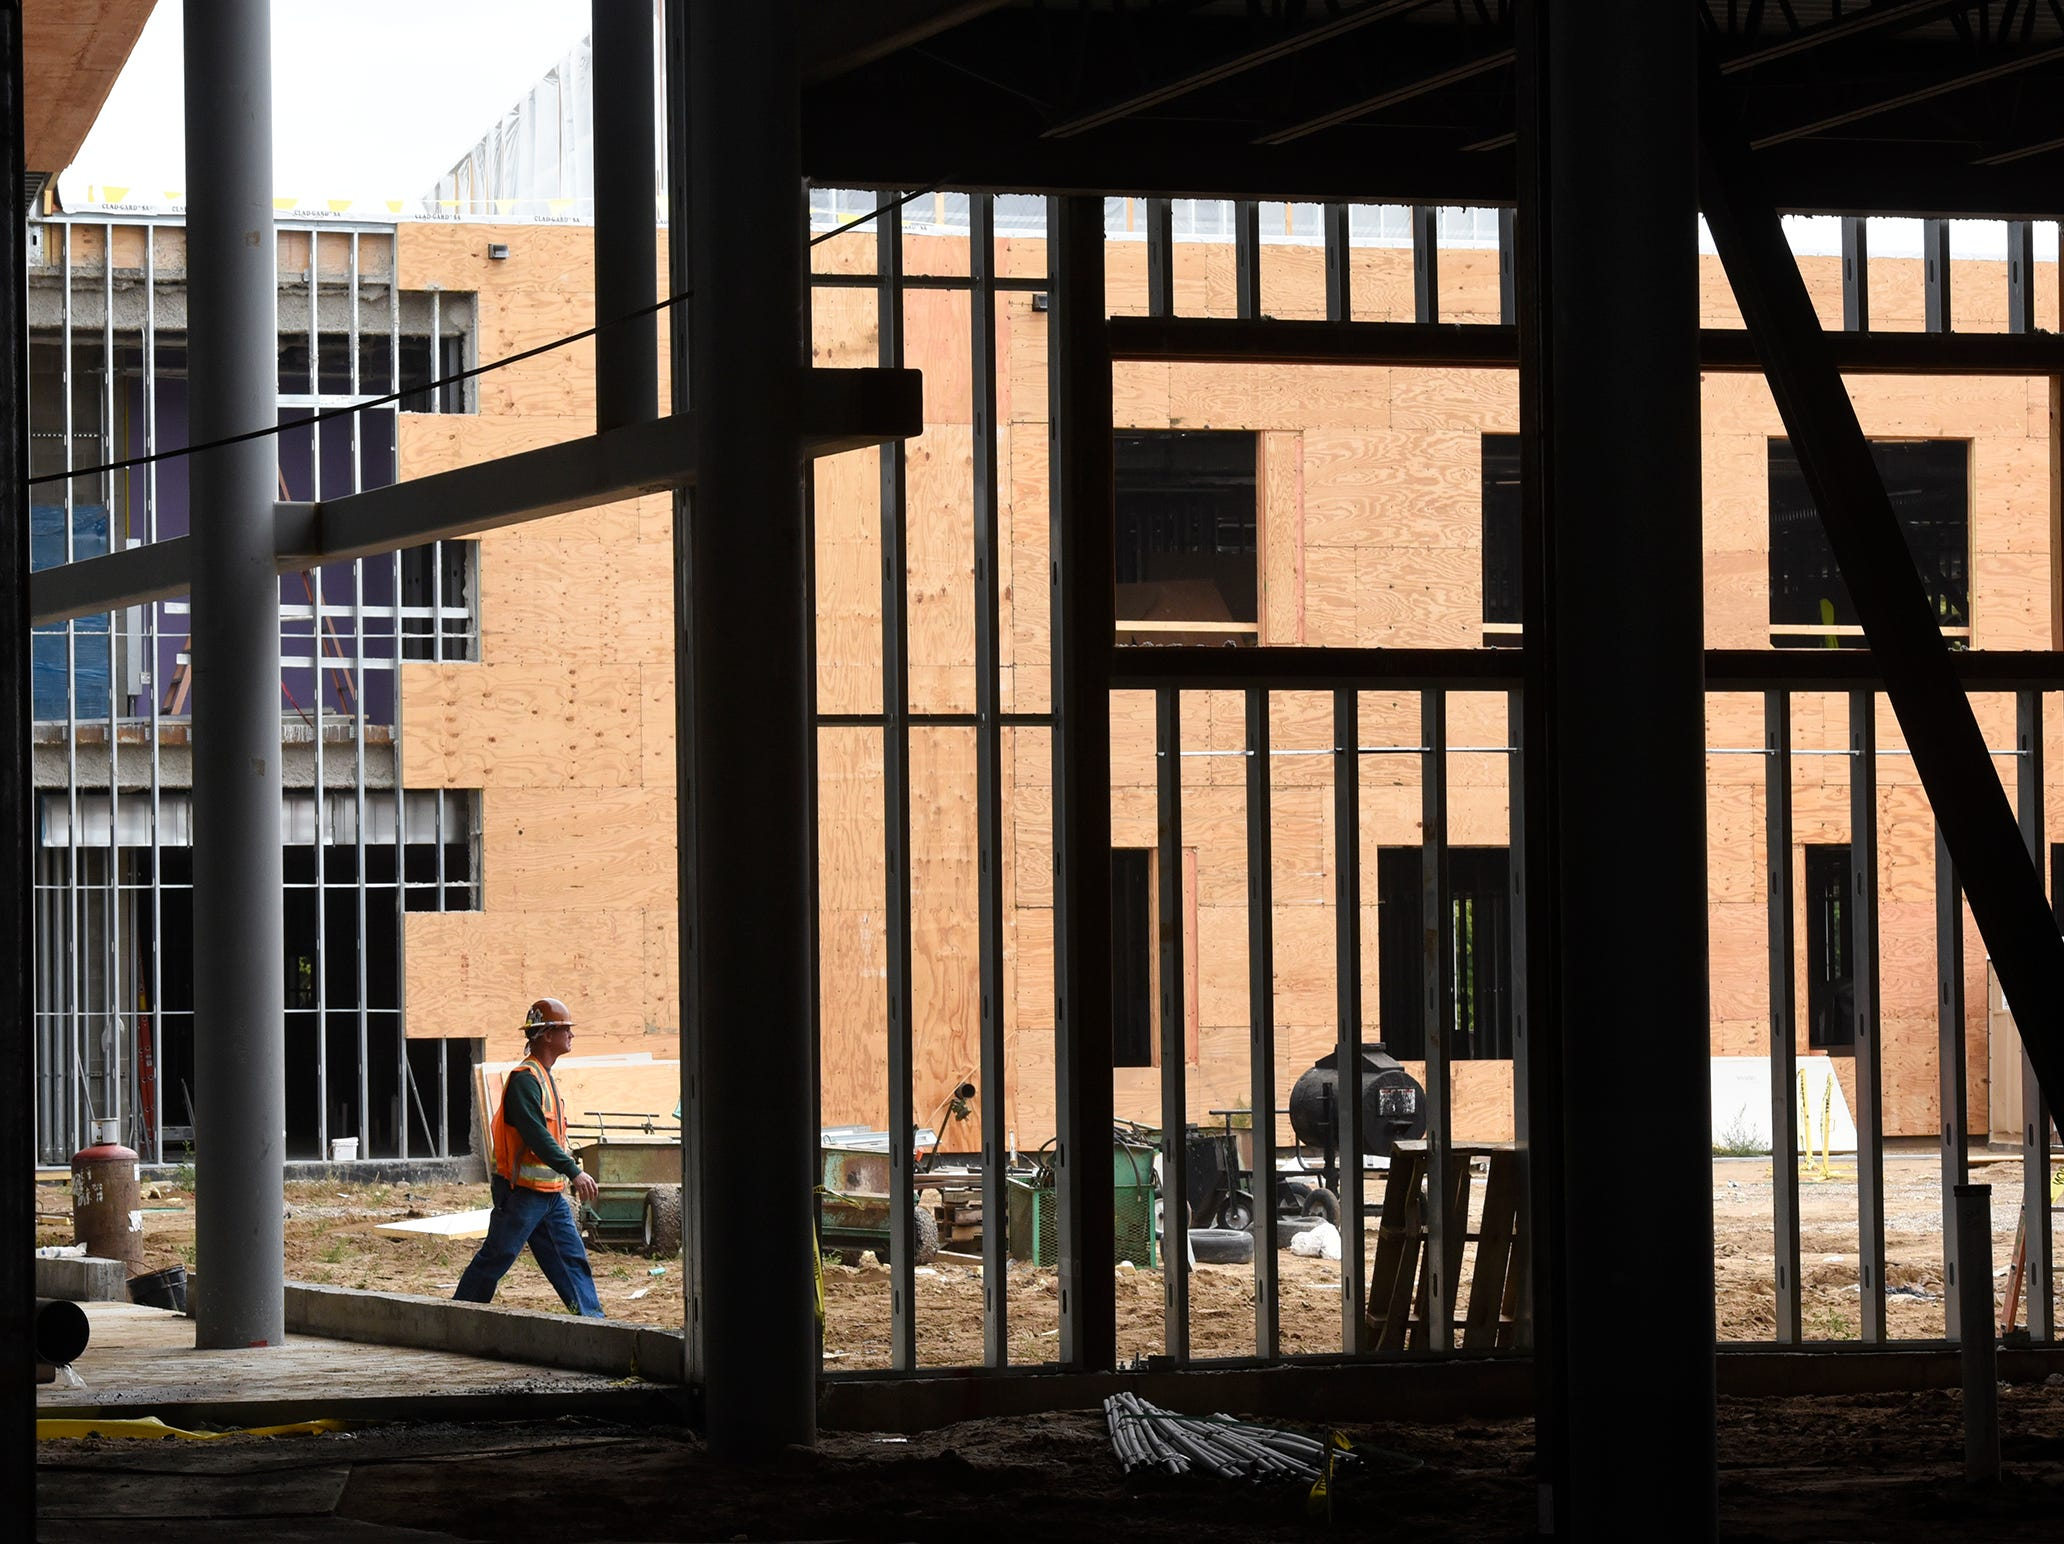 Workers walk between beams near the commons area Monday, Sept. 10, at the new Tech High School site in St. Cloud. Now a year into the building project, about 150 workers are on site daily and the focus has turned to inside the $104.5 million structure. See Page 3A for the latest progress.